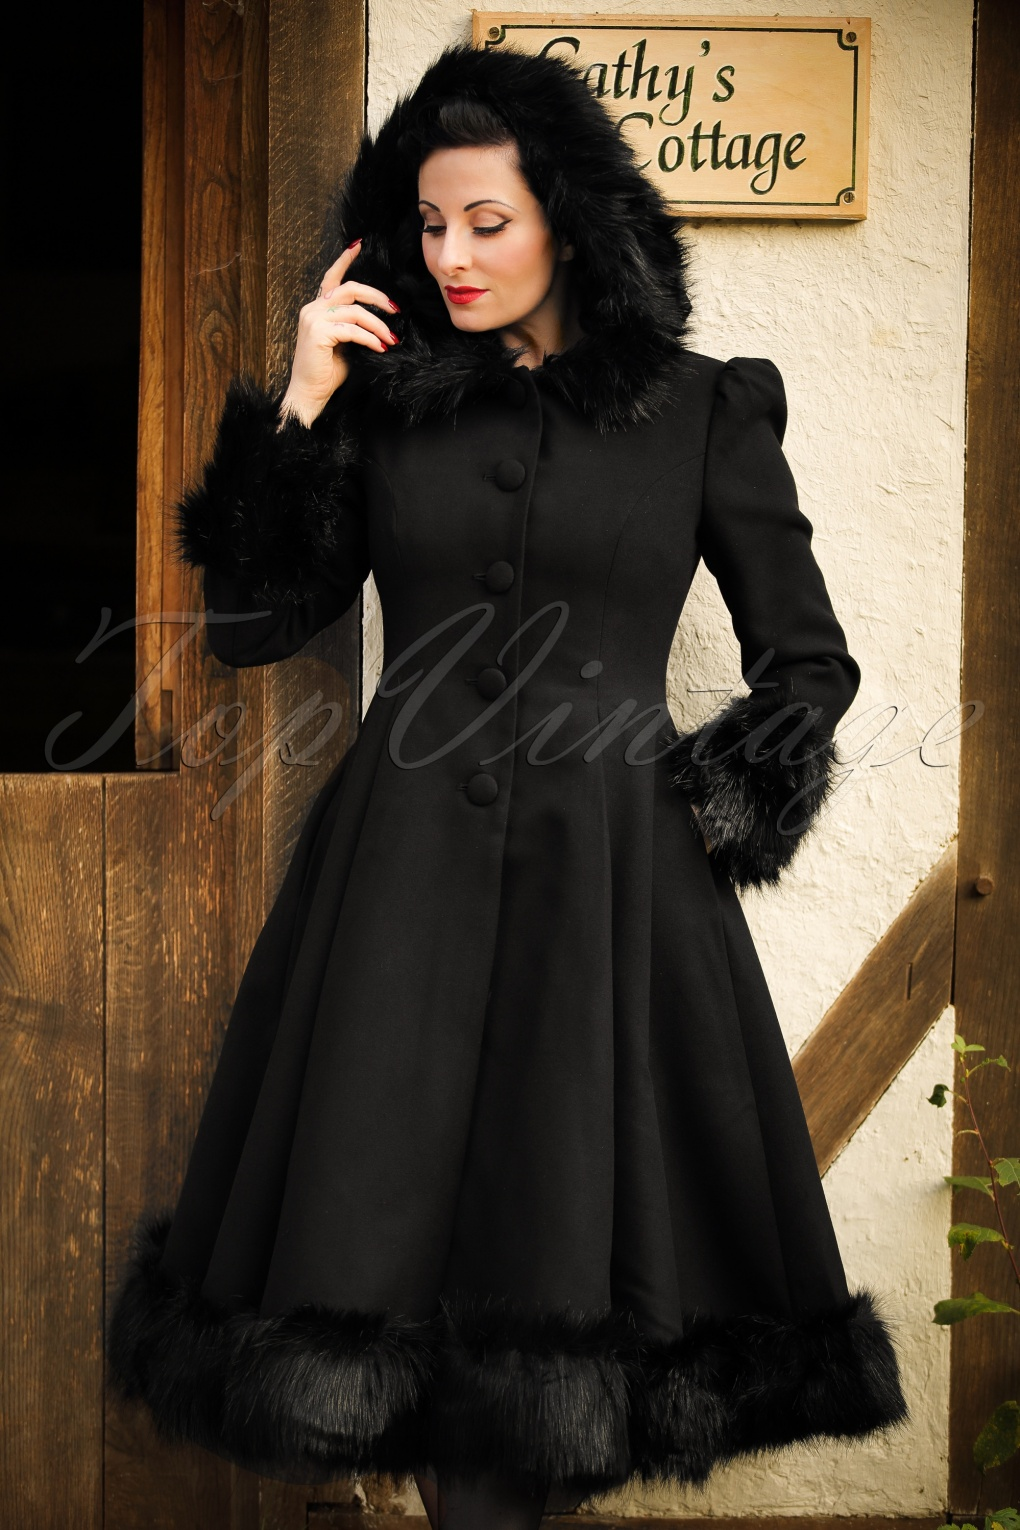 1940s Style Coats and Jackets for Sale 30s Elvira Coat in Black £124.74 AT vintagedancer.com